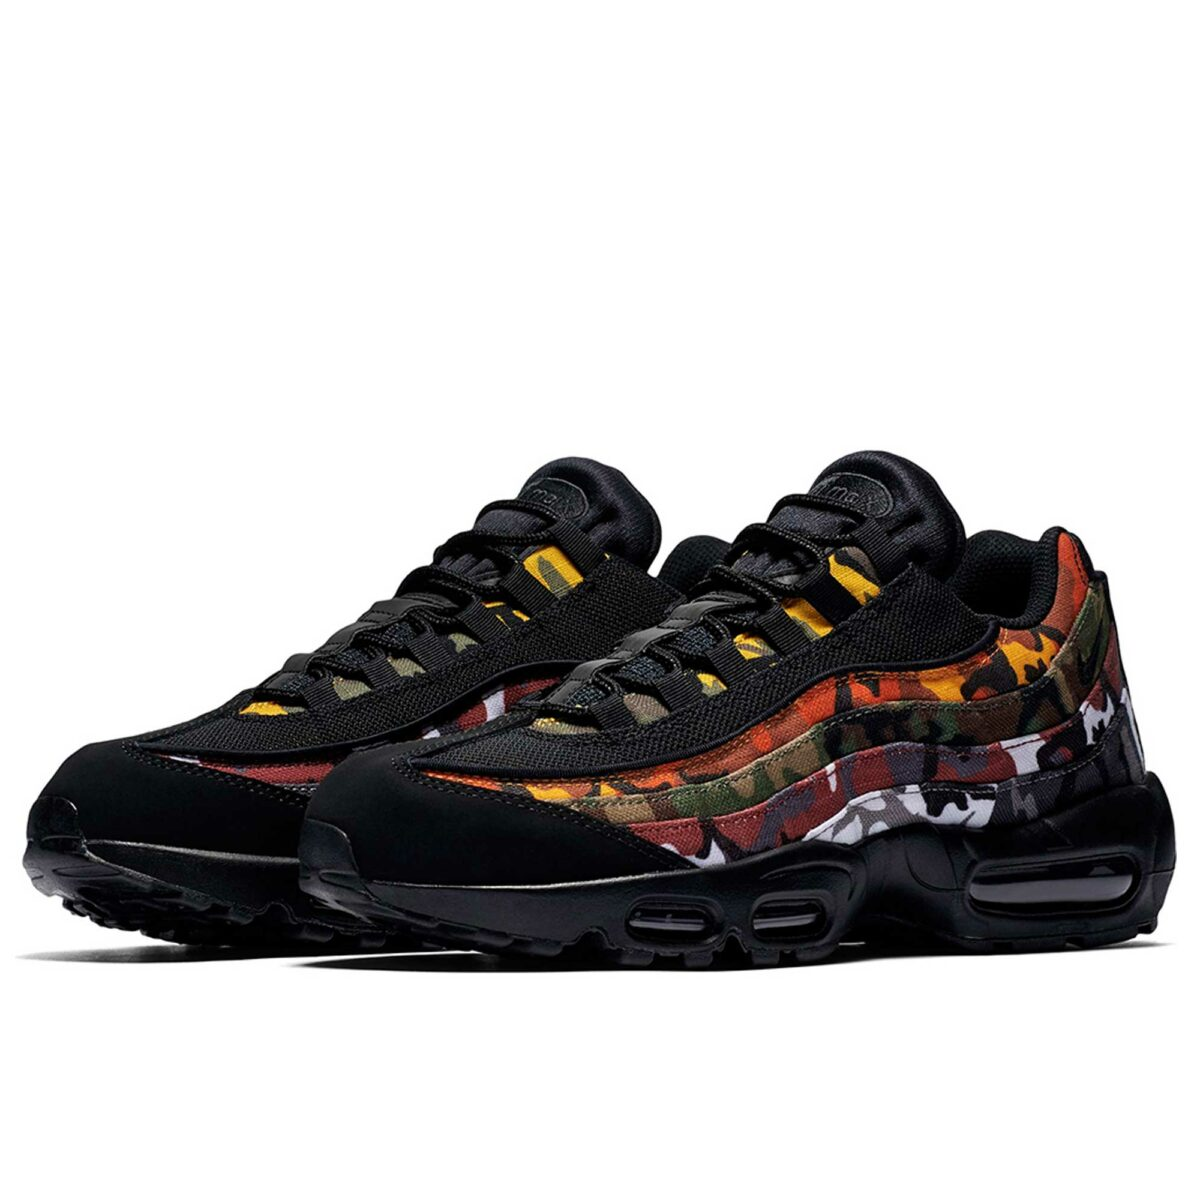 nike air max 95 black multi camouflage ar4473_001 купить